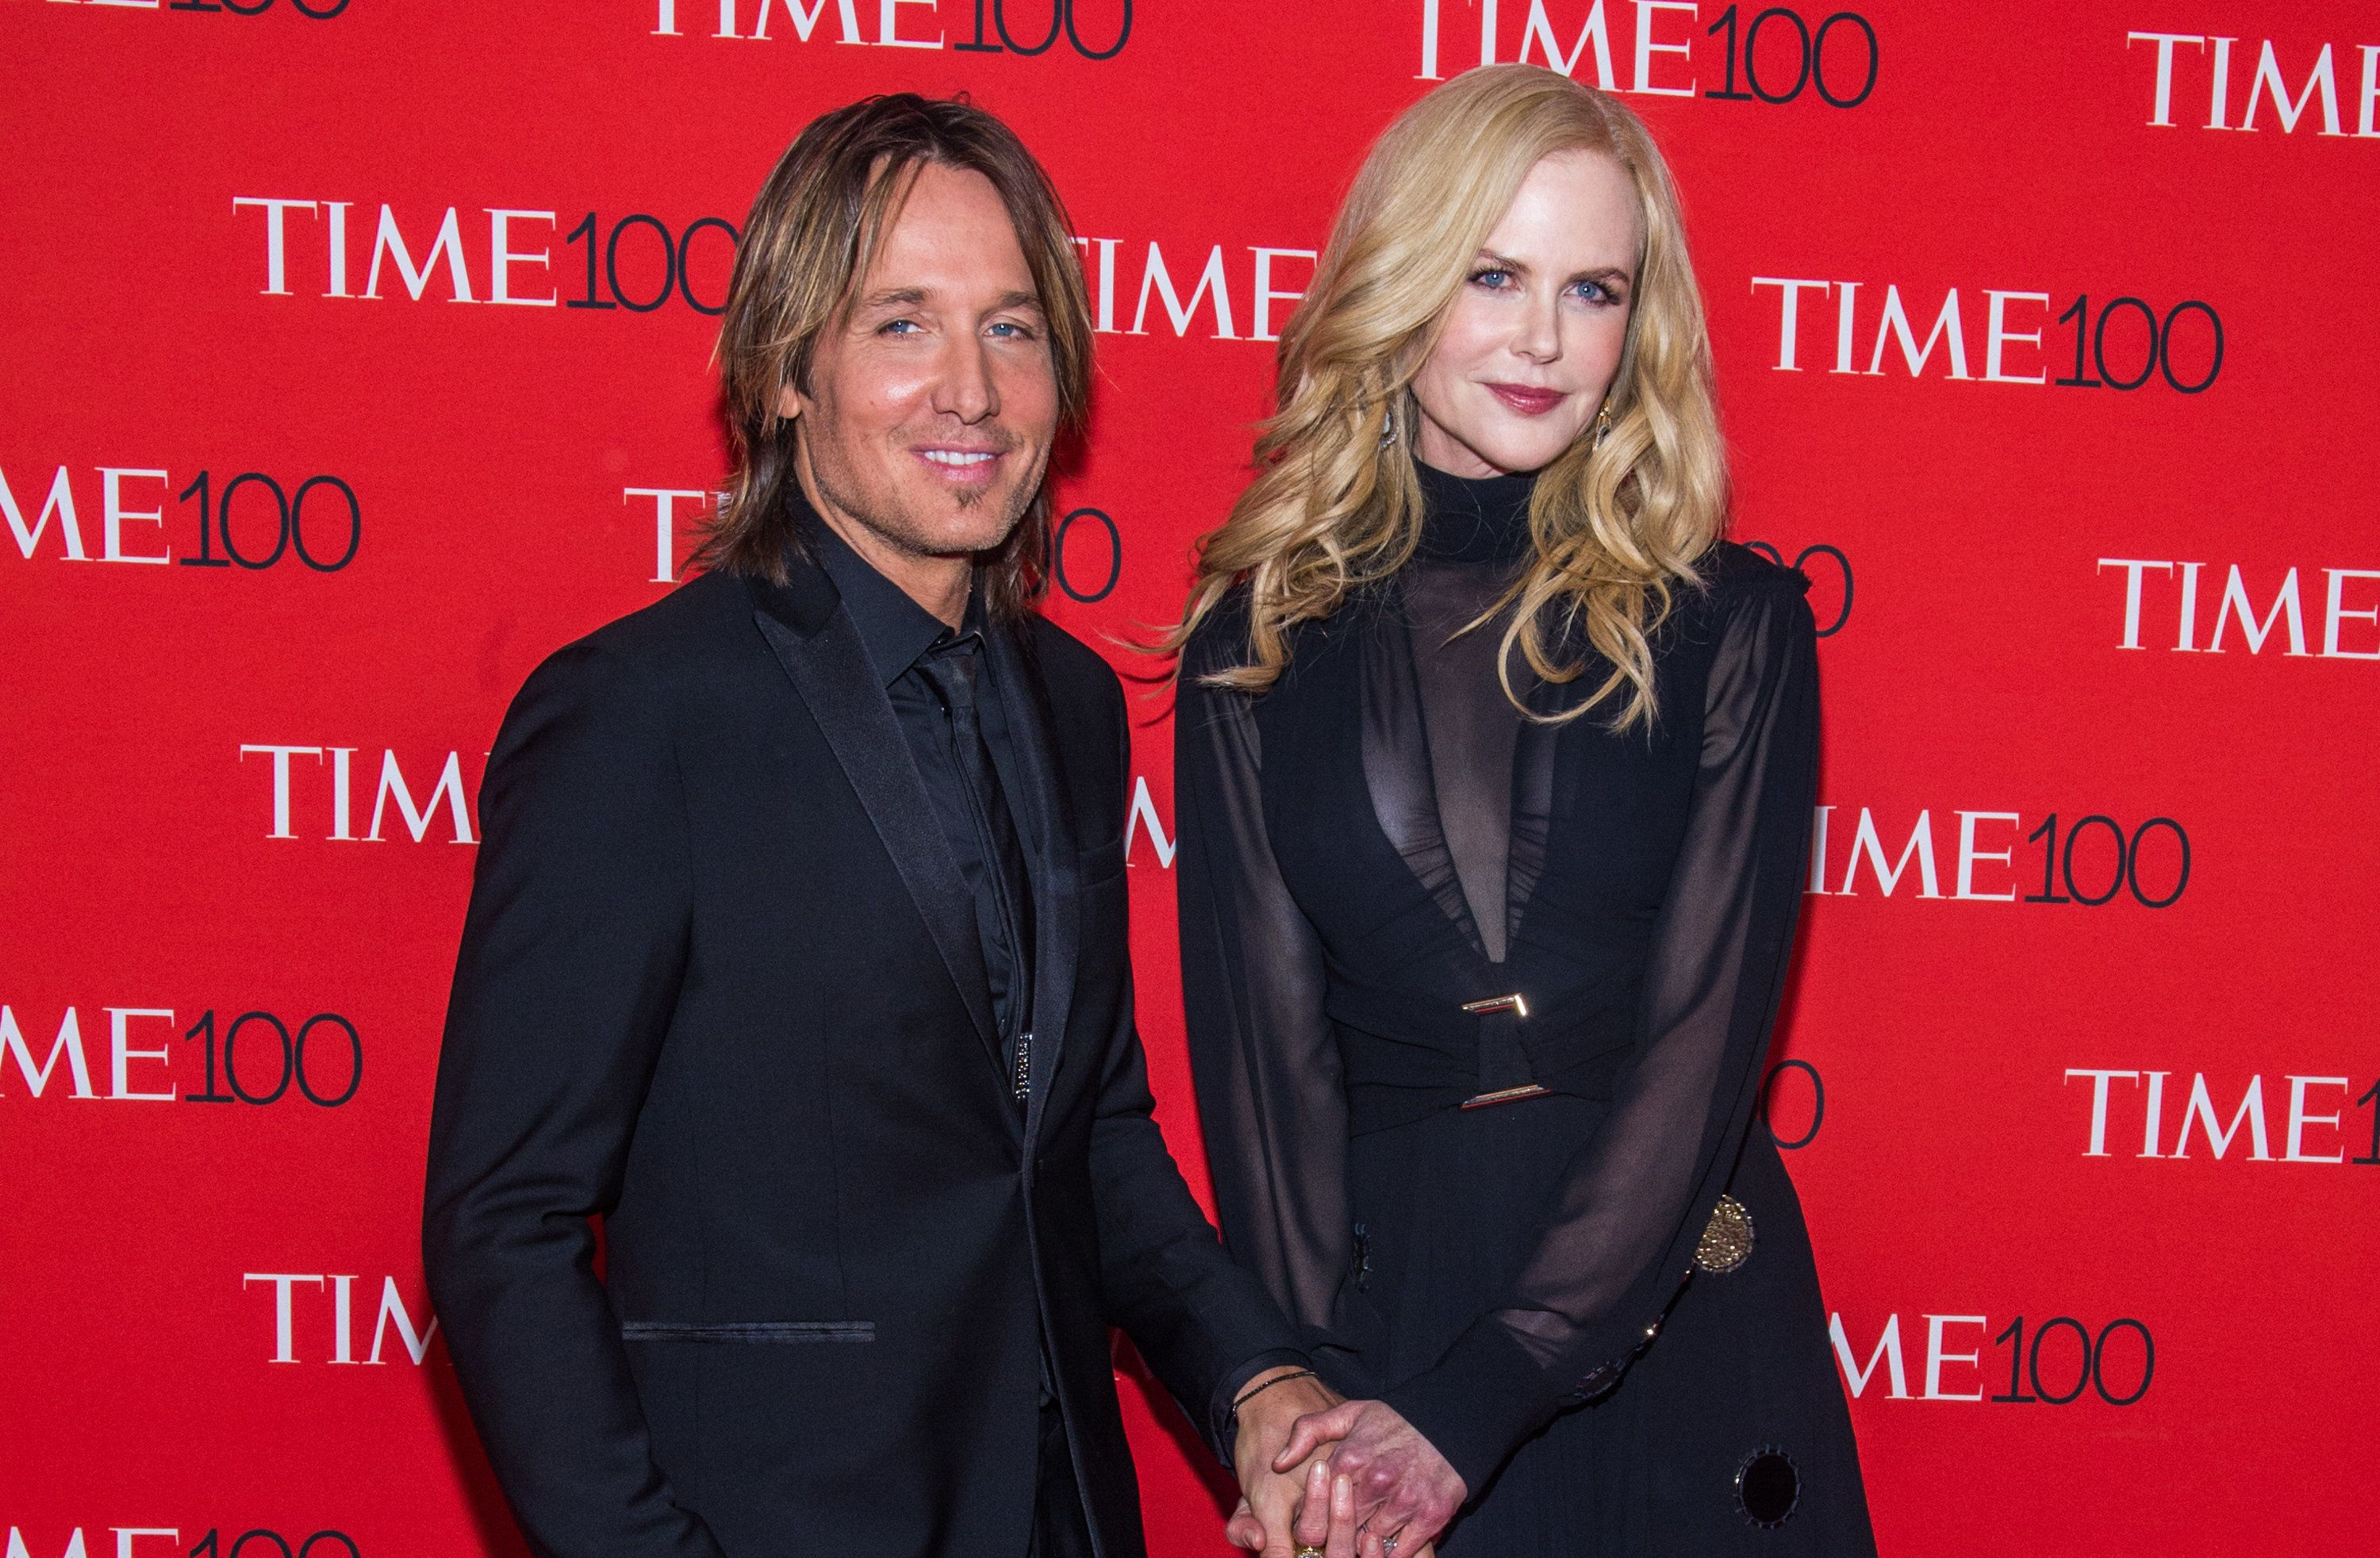 Keith Urban and Nicole Kidman at the 2018 Time 100 Gala on April 24 in New York City.